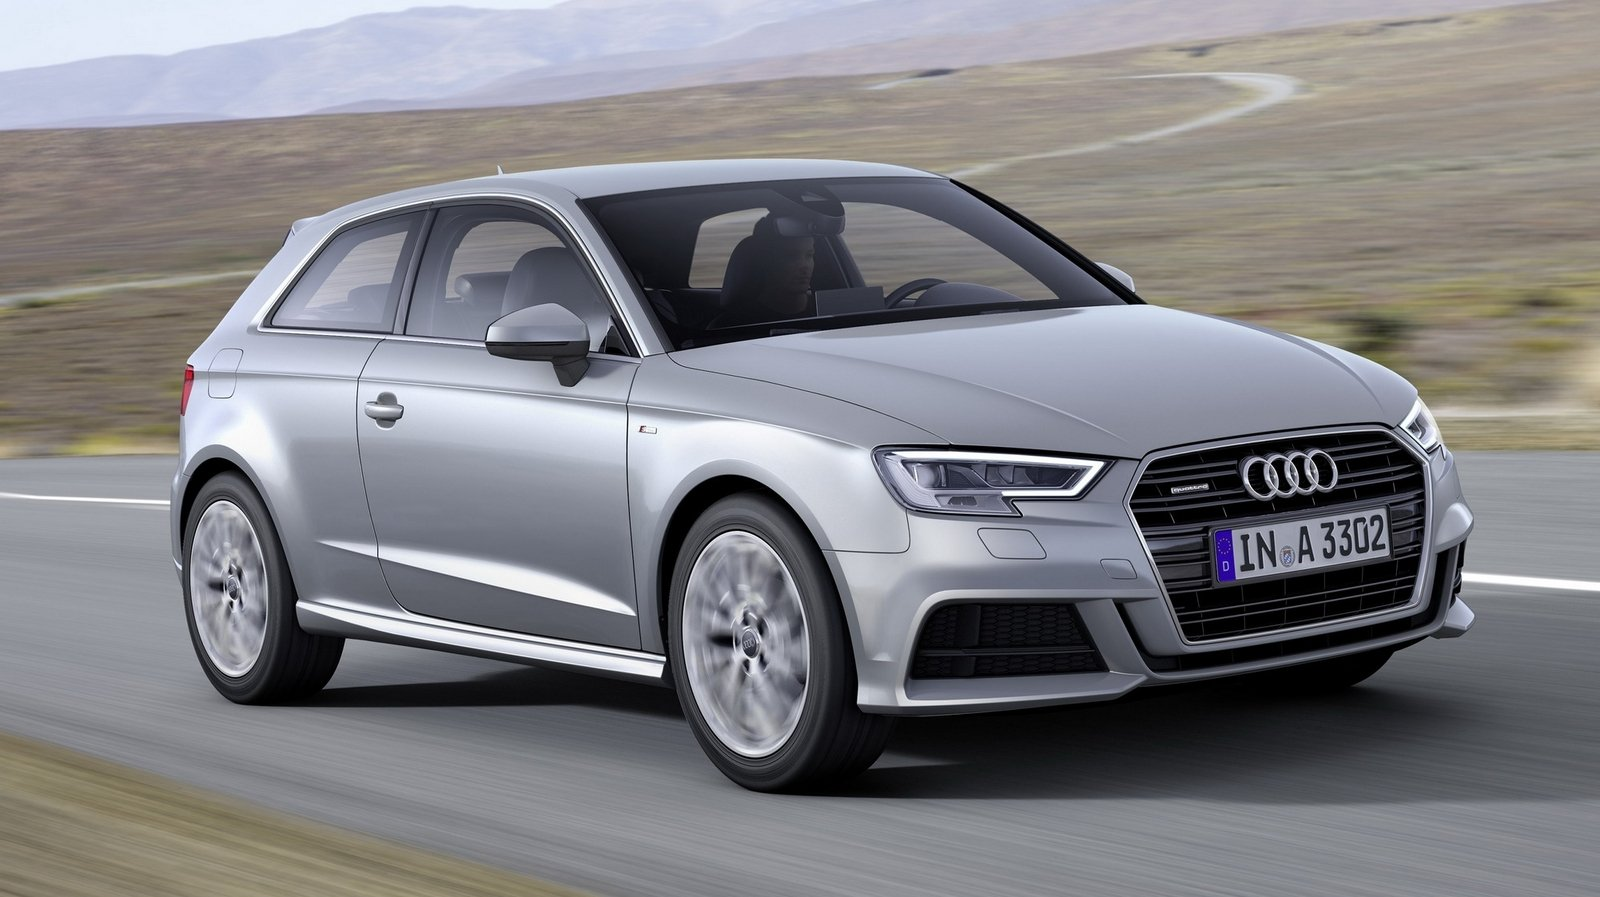 Audi A Hatchback Review Top Speed - Audi car 04